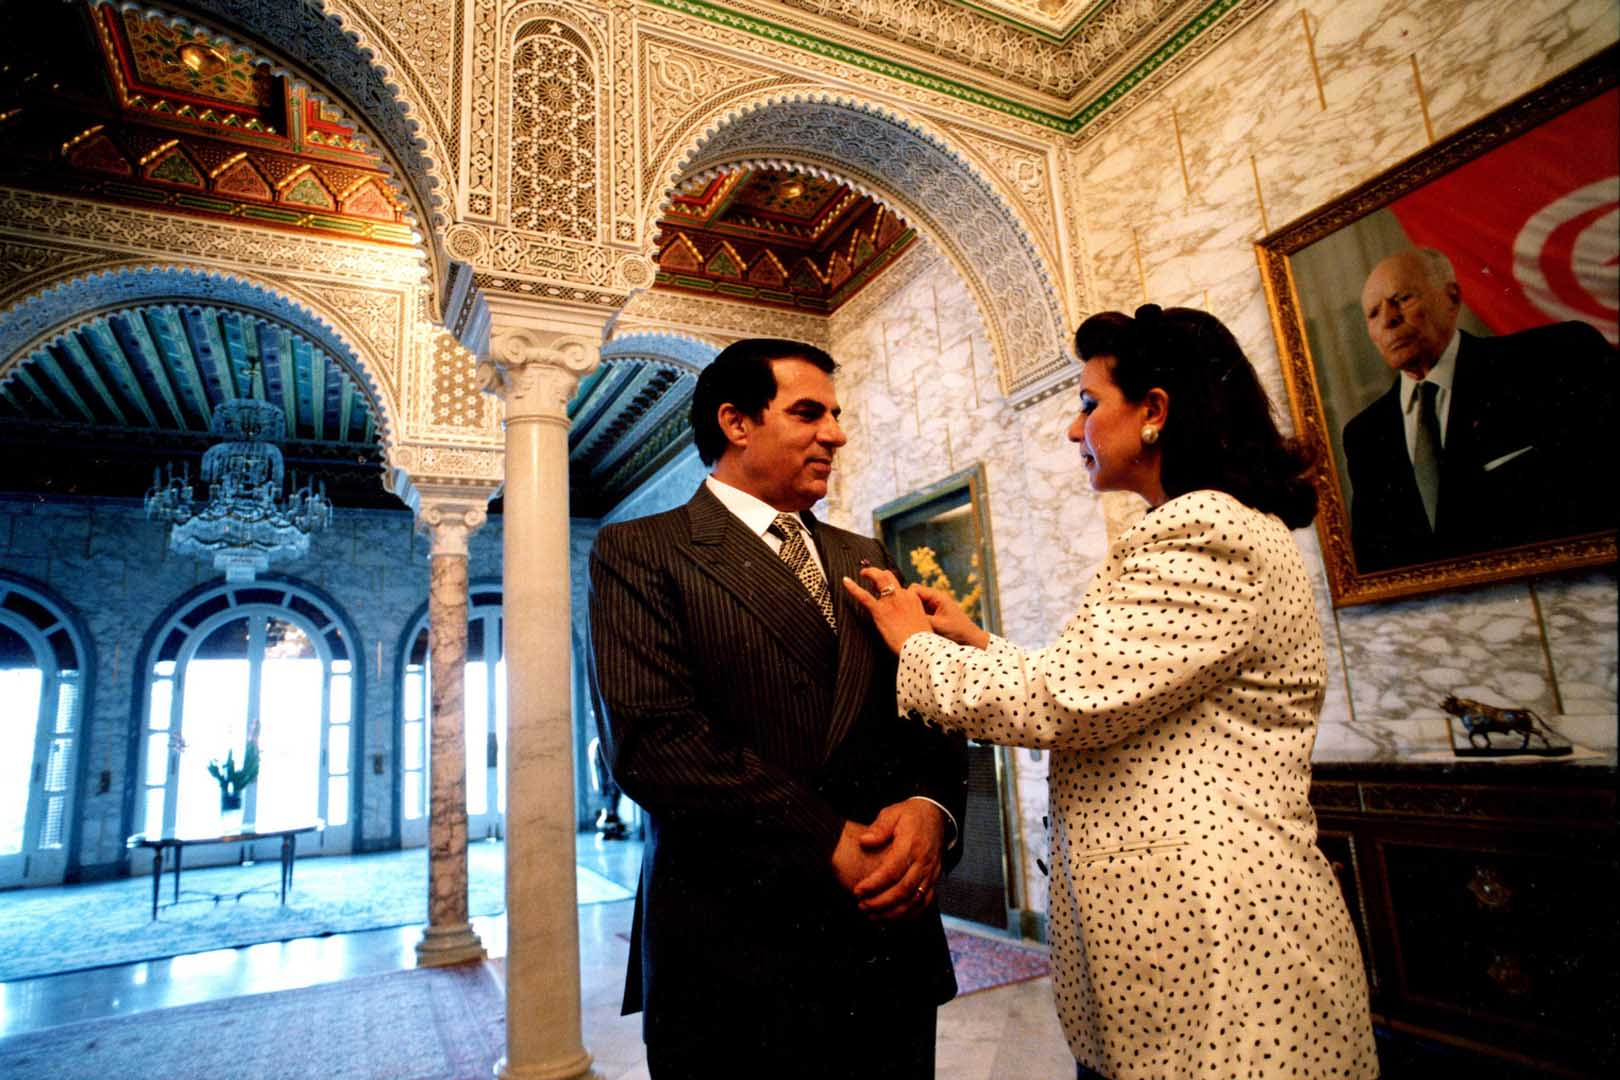 Tunisian President Zine El Abidine Ben Ali With His Wife Leila Trabelsi At Carthage Presidential Palace In 1997 C Ammar Abd Rabbo